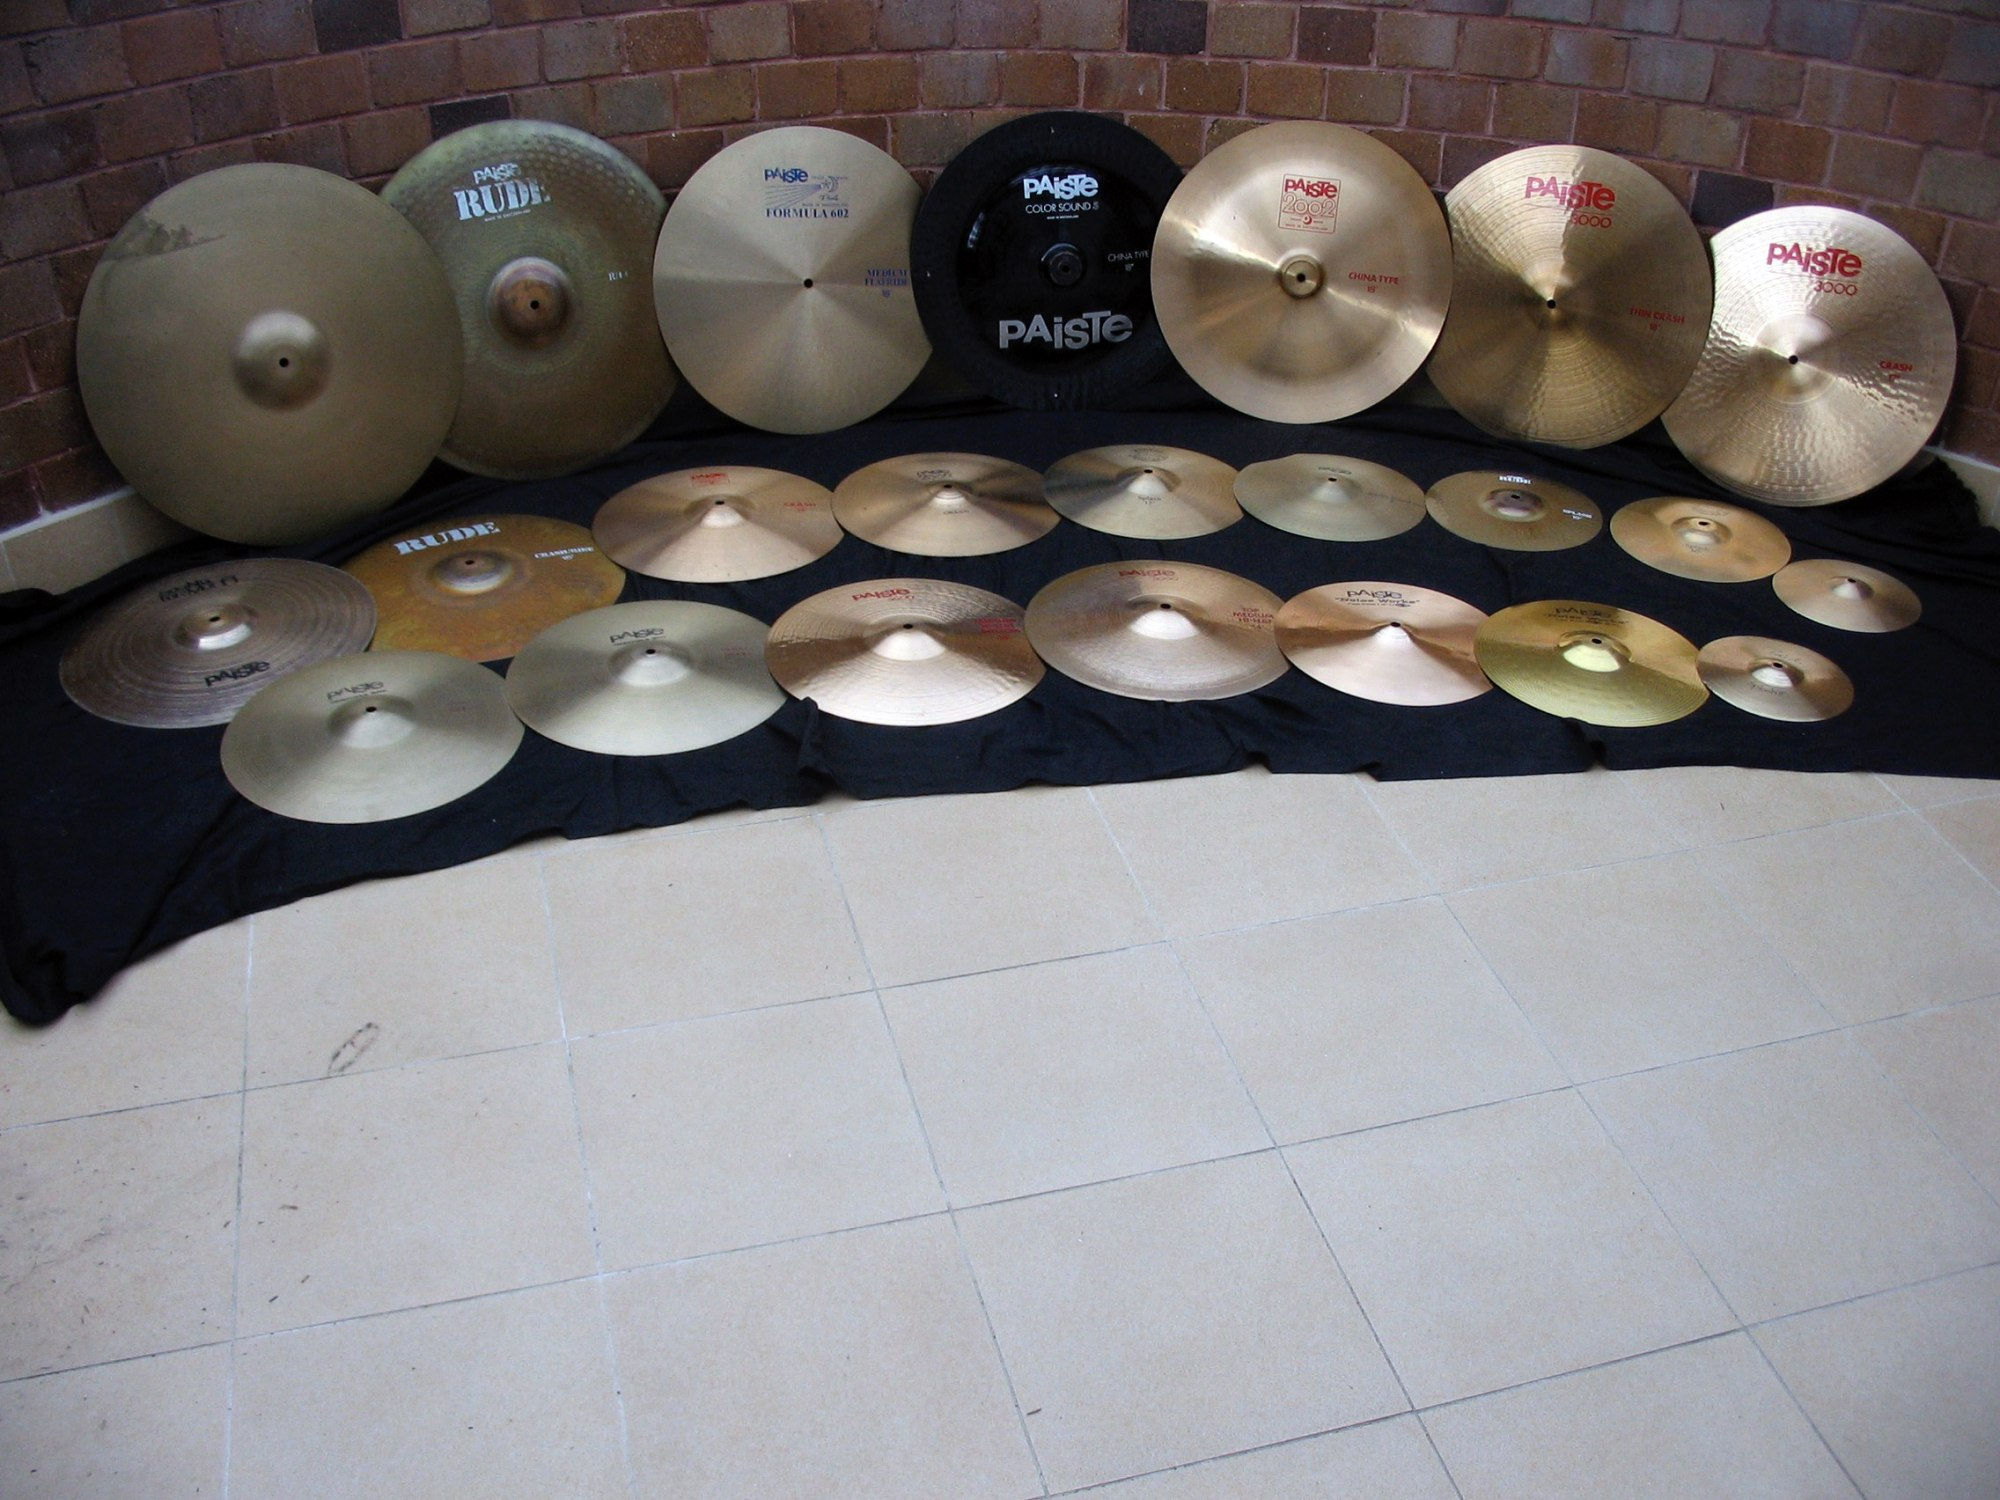 Paiste collection 2006